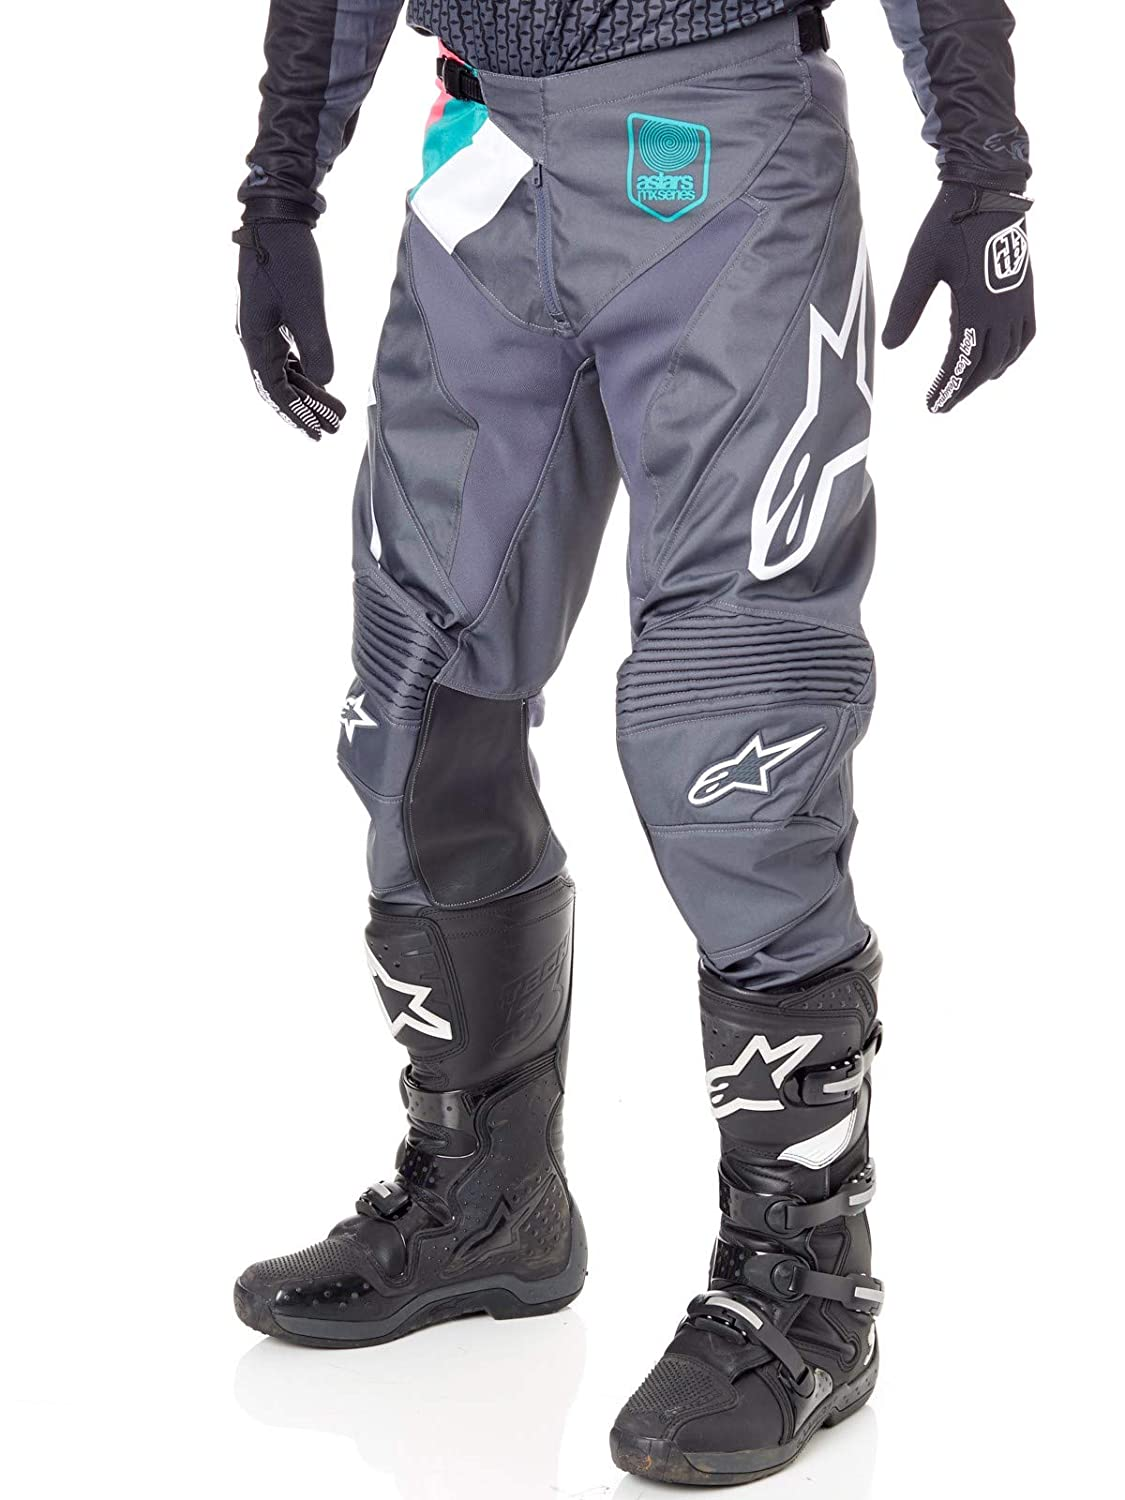 Alpinestars Vice Indianapolis Limited Edition Grey Racer Motocross Pants Adults 32